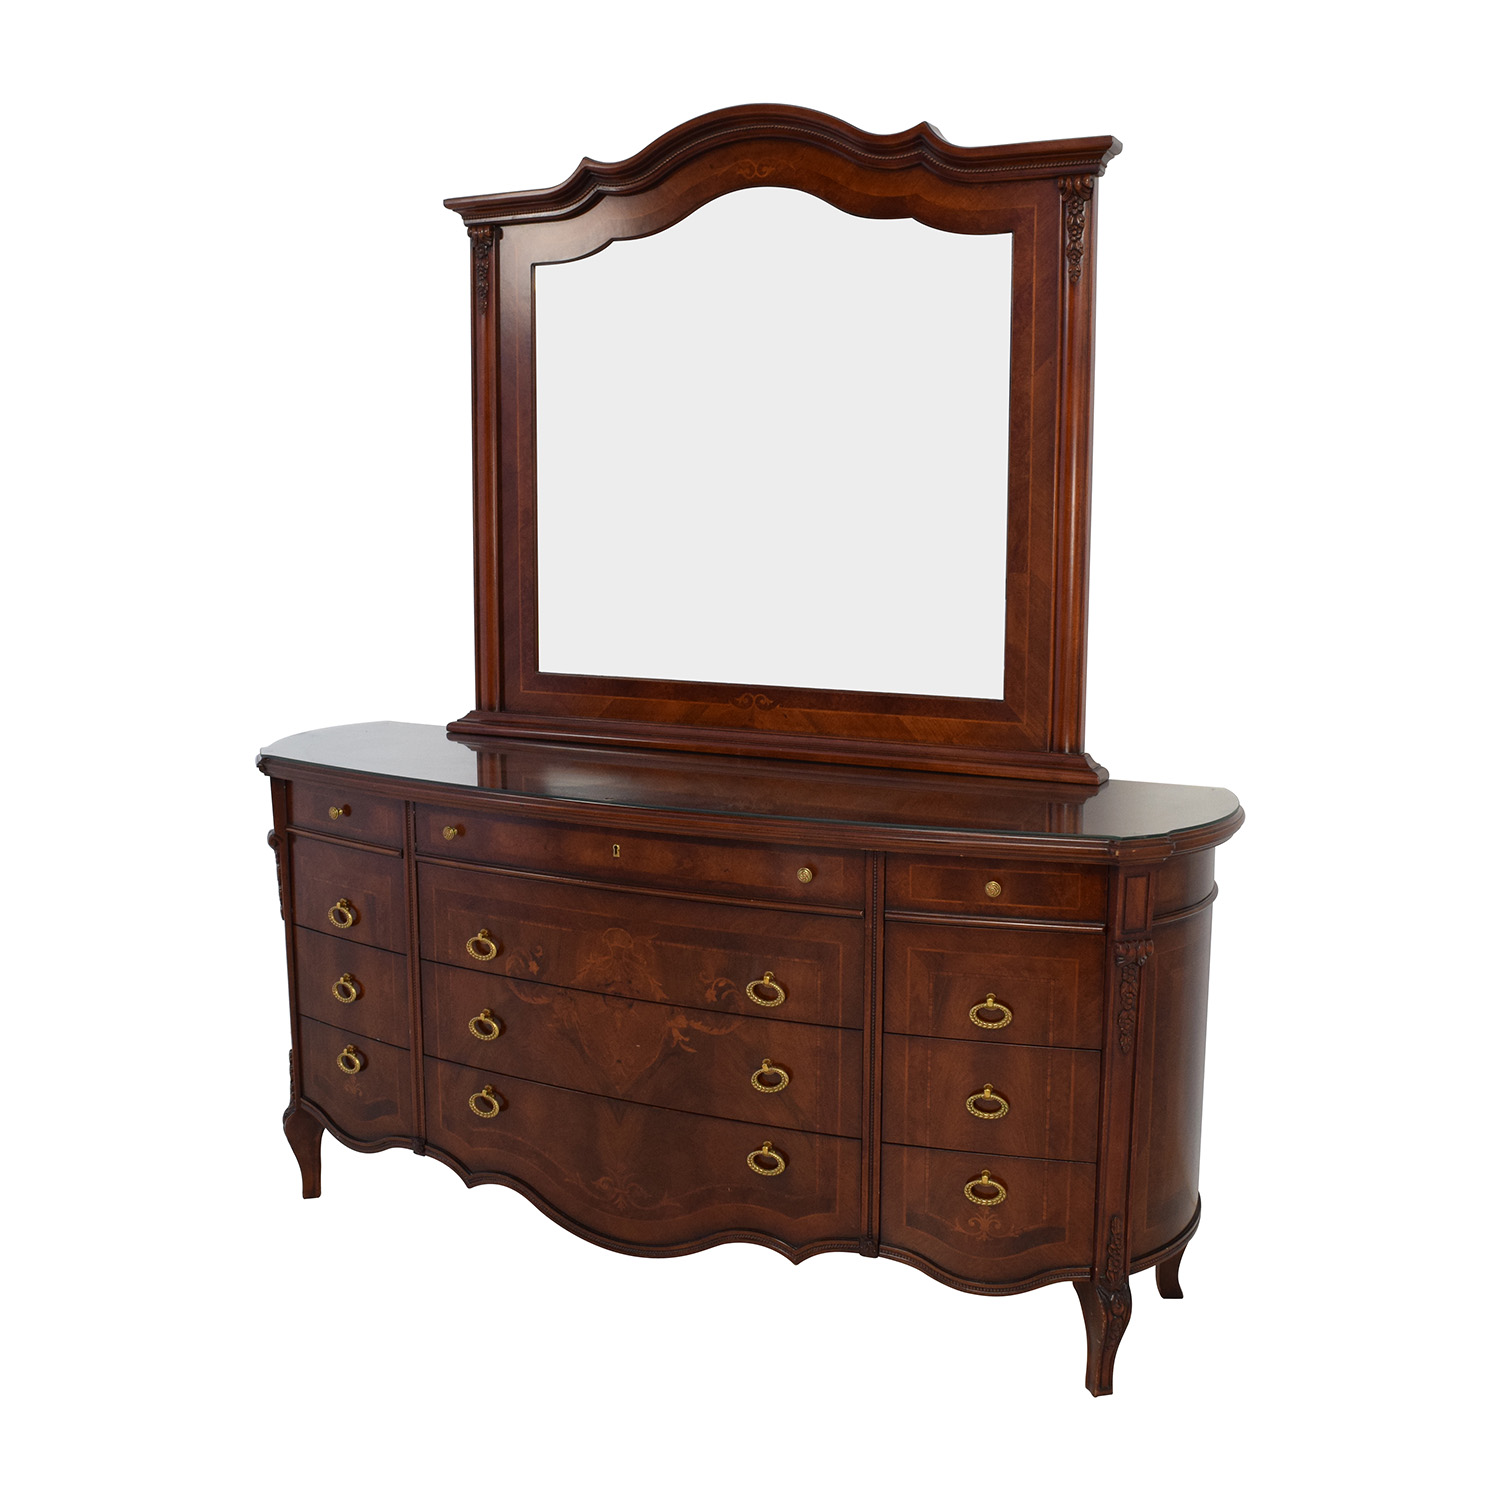 90 off antique european wood dresser with mirror storage for Furniture 90 off